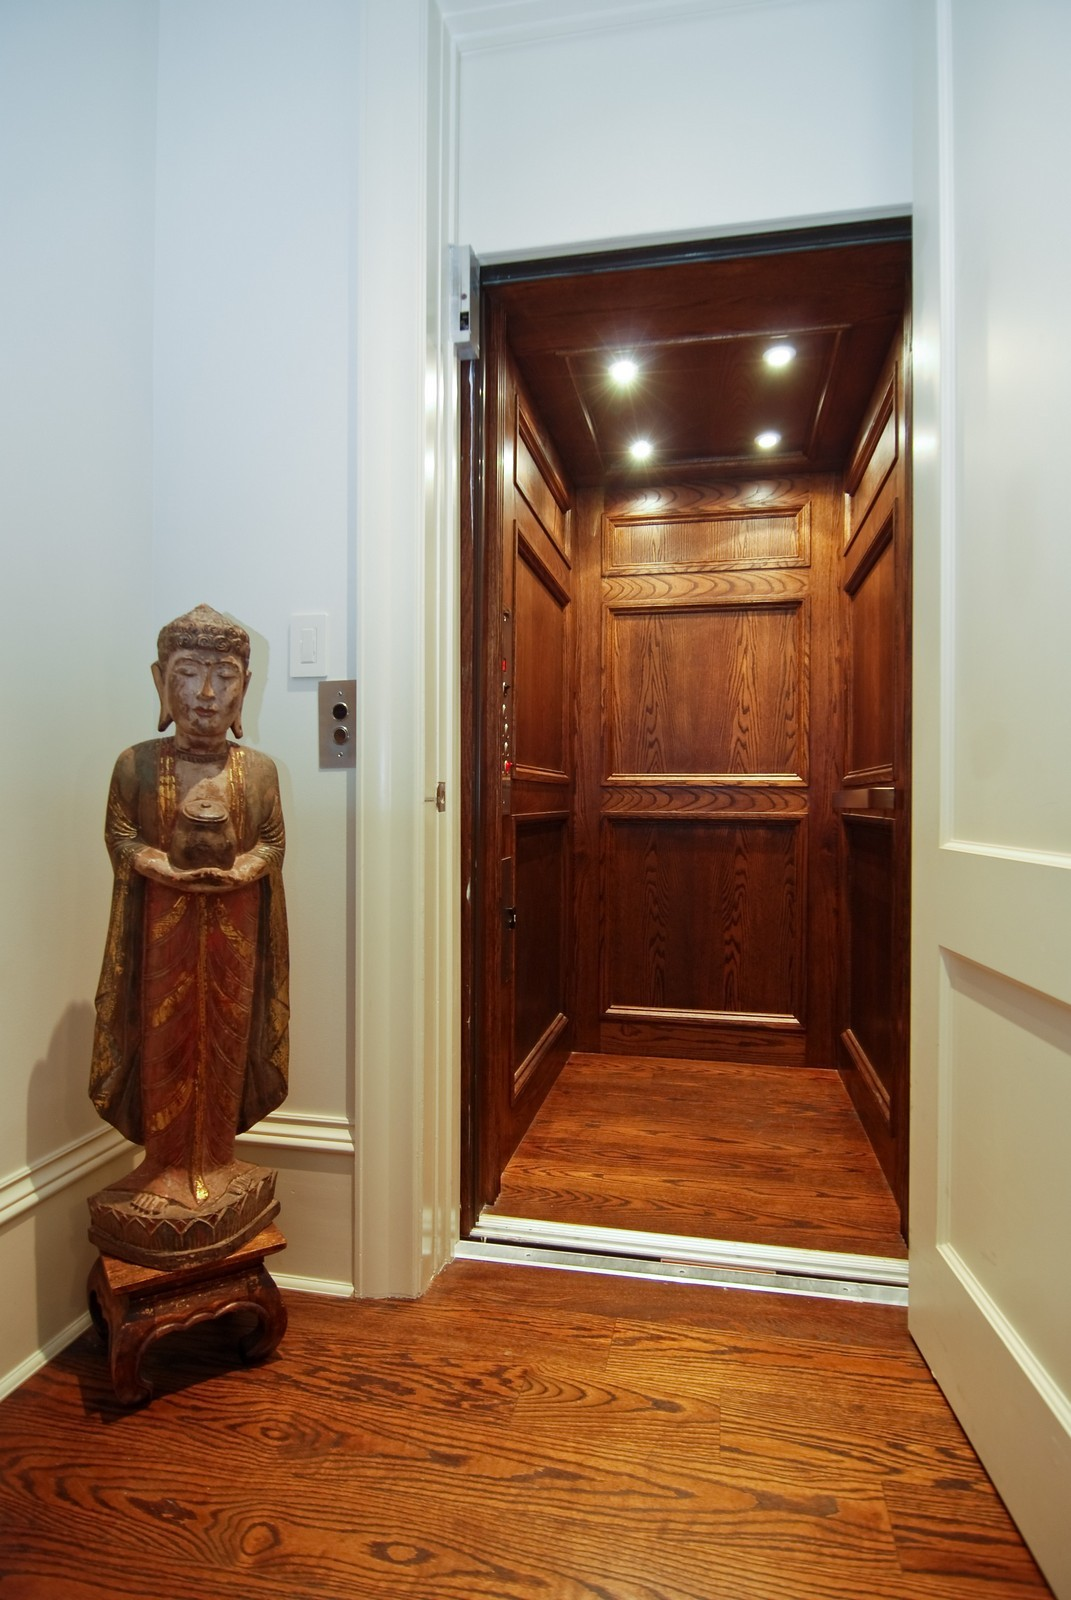 Real Estate Photography - 729 N Kingsbury, Chicago, IL, 60654 - Elevator